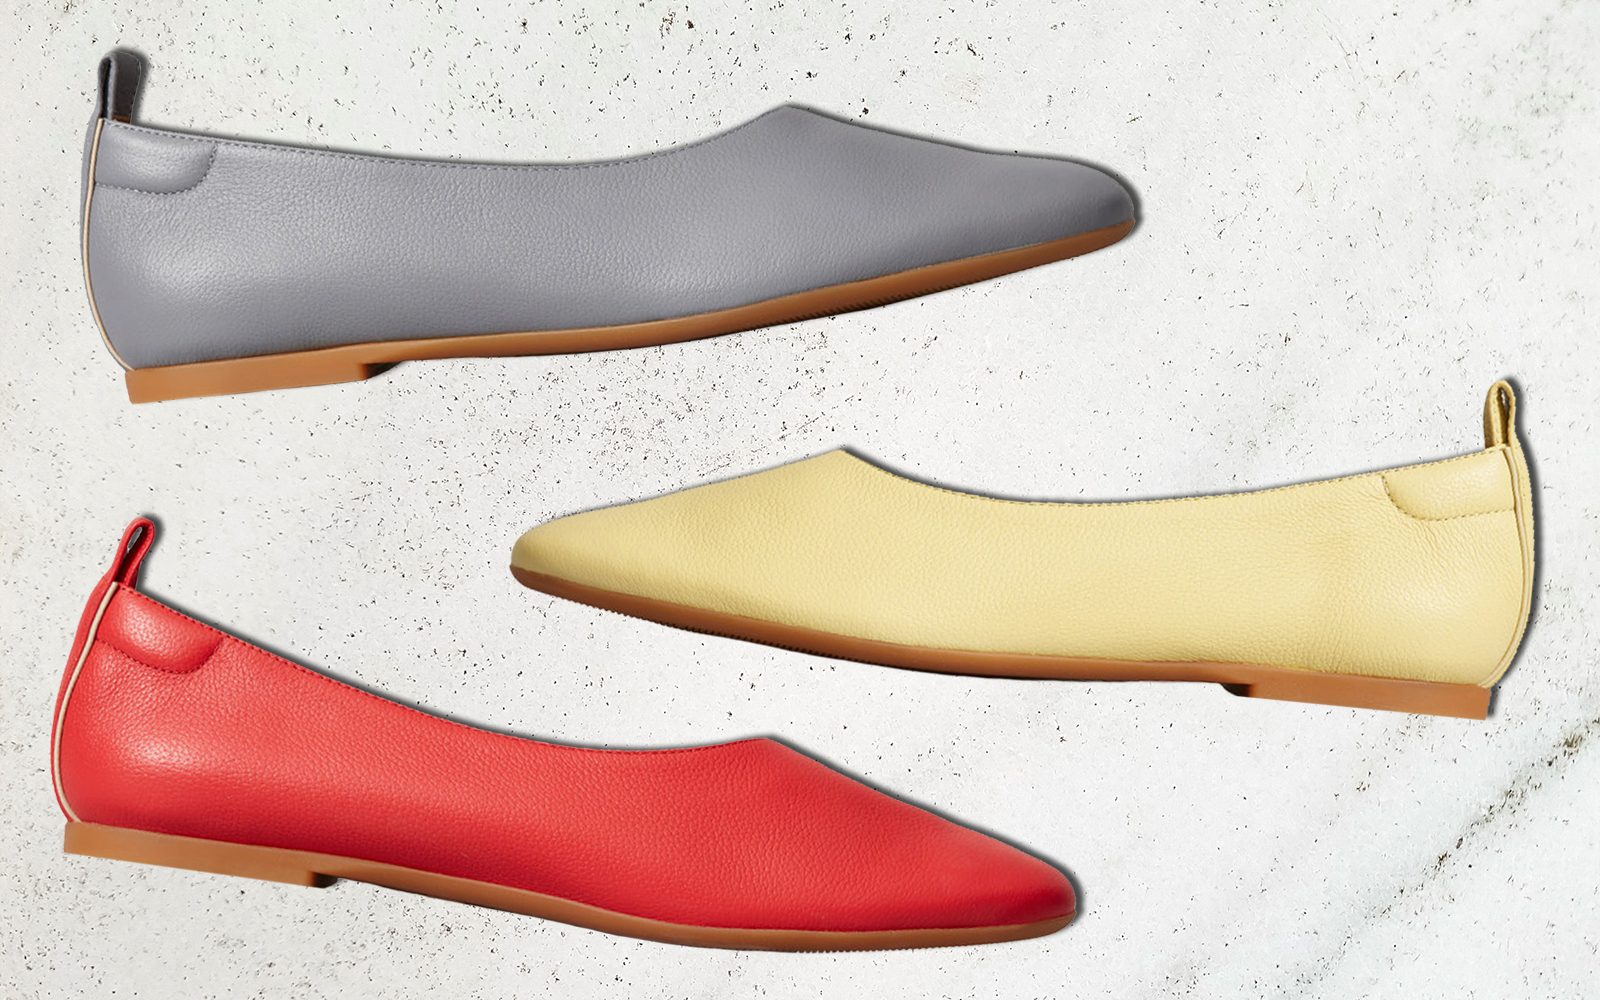 Everlane's Best-selling Comfy Flats Now Come in 3 Gorgeous New Colors for Spring